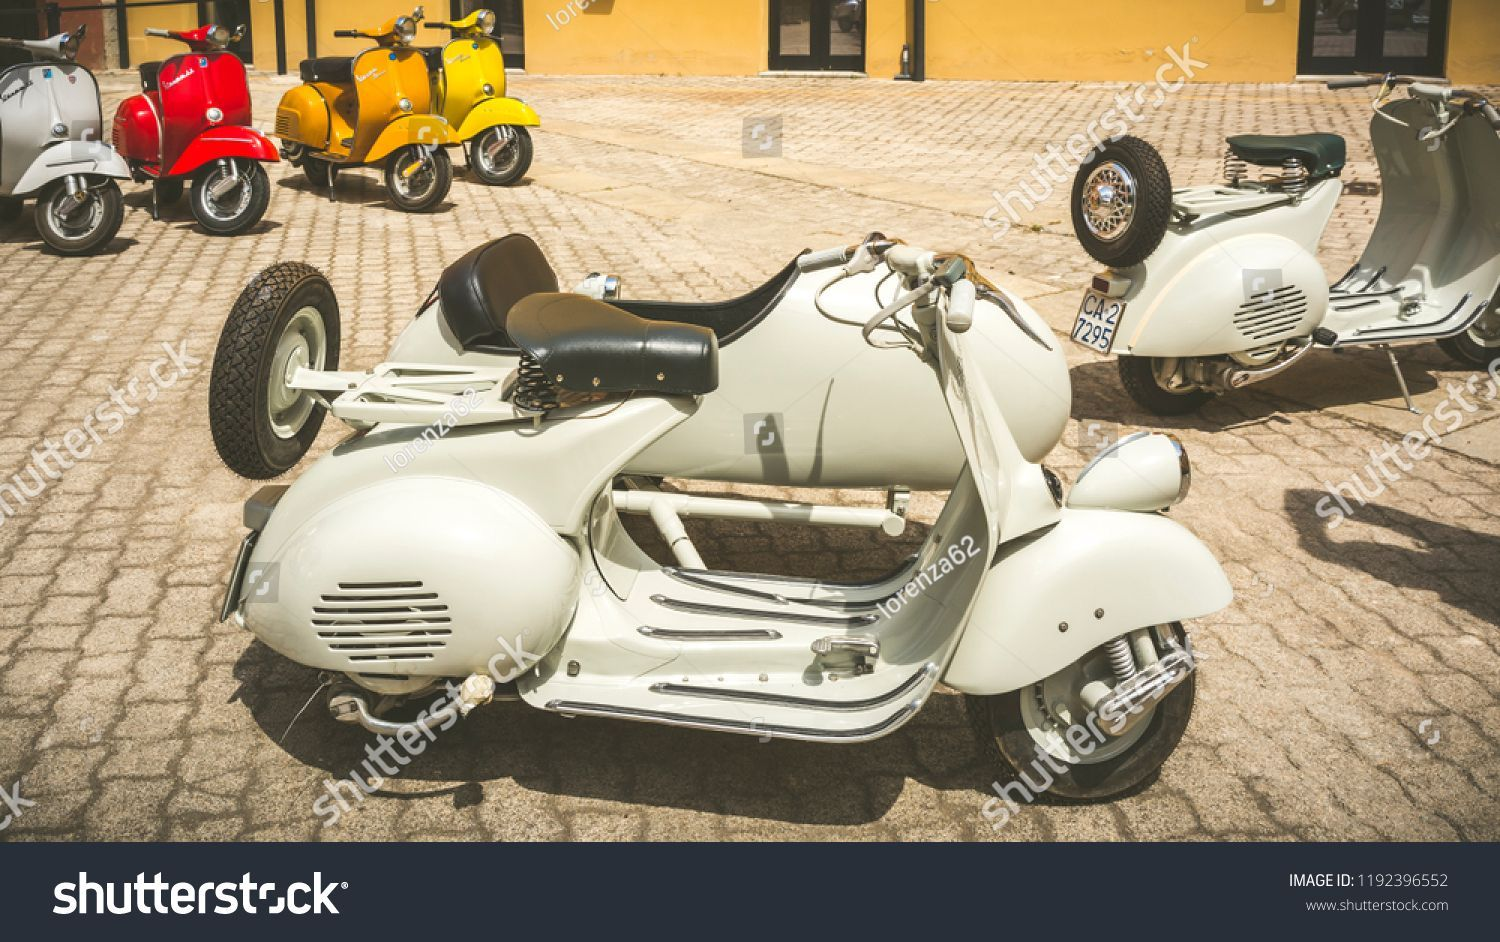 Cagliari Italy April 29 2018 Piaggio Stock Photo (Edit Now) 1192396552 #piaggiovespa Cagliari, Italy - April 29, 2018: Piaggio Vespa vintage scooters meeting. Vintage Vespa with Sidecar from the 50s. Post process in vintage style. #Sponsored , #sponsored, #Piaggio#vintage#Vespa#Italy #piaggiovespa